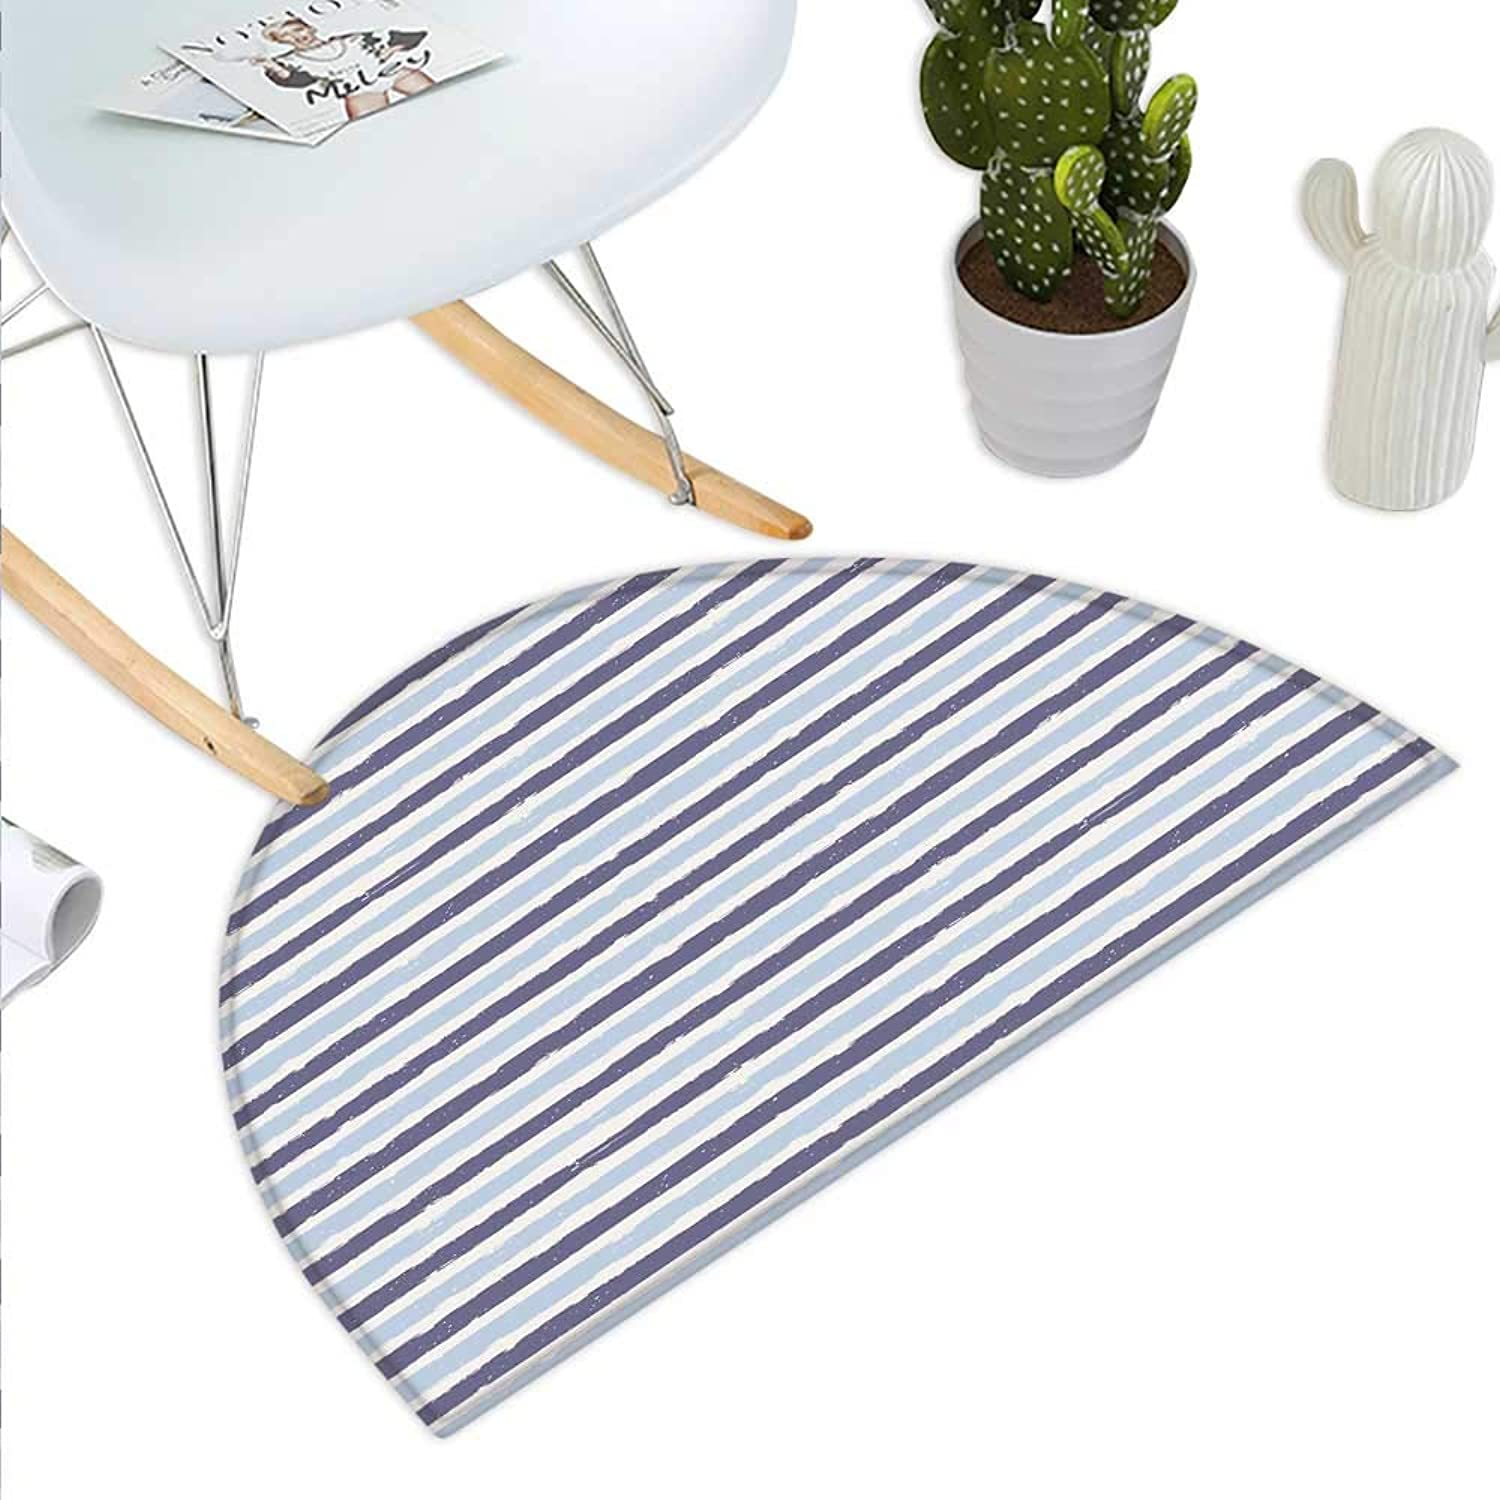 Harbour Stripe Semicircle Doormat Abstract Soft Toned Sketchy Horizontal Stripes Artistic Pattern Halfmoon doormats H 43.3  xD 64.9  Baby and Cadet bluee